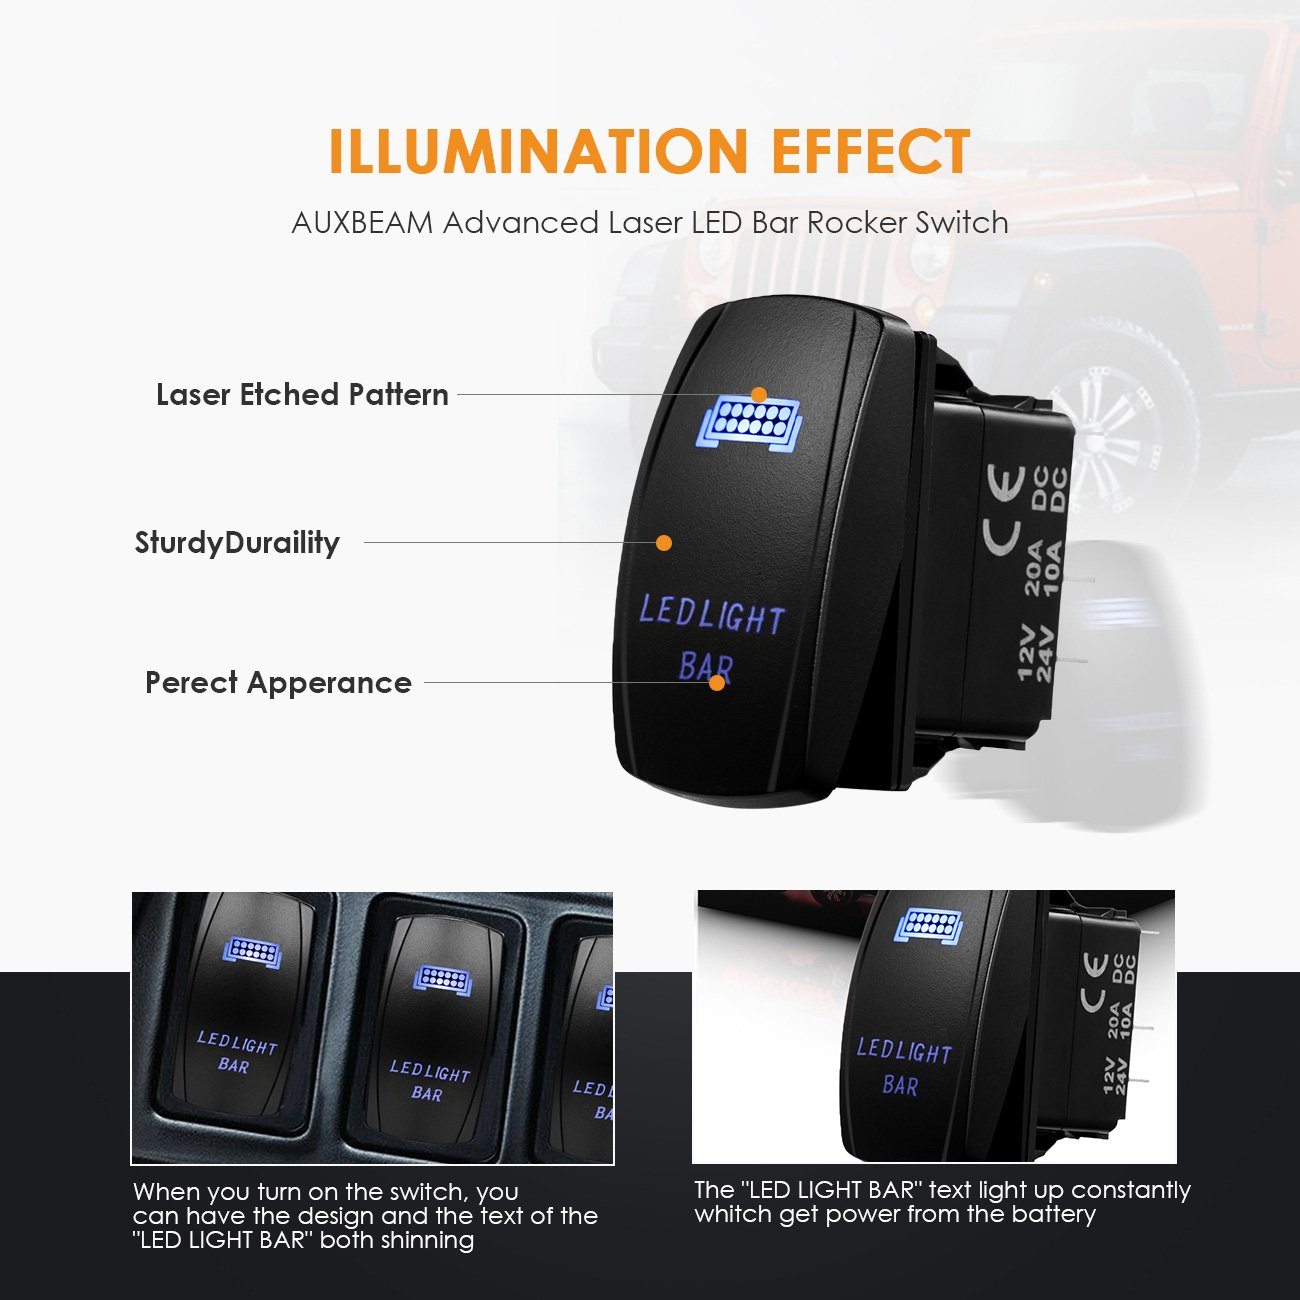 Auxbeam LED Light Bar Rocker Switch with Switching Lines for 12 / 24V Cars, Motorcycles, Buses, Boats, RVs, Trailers by Auxbeam (Image #5)